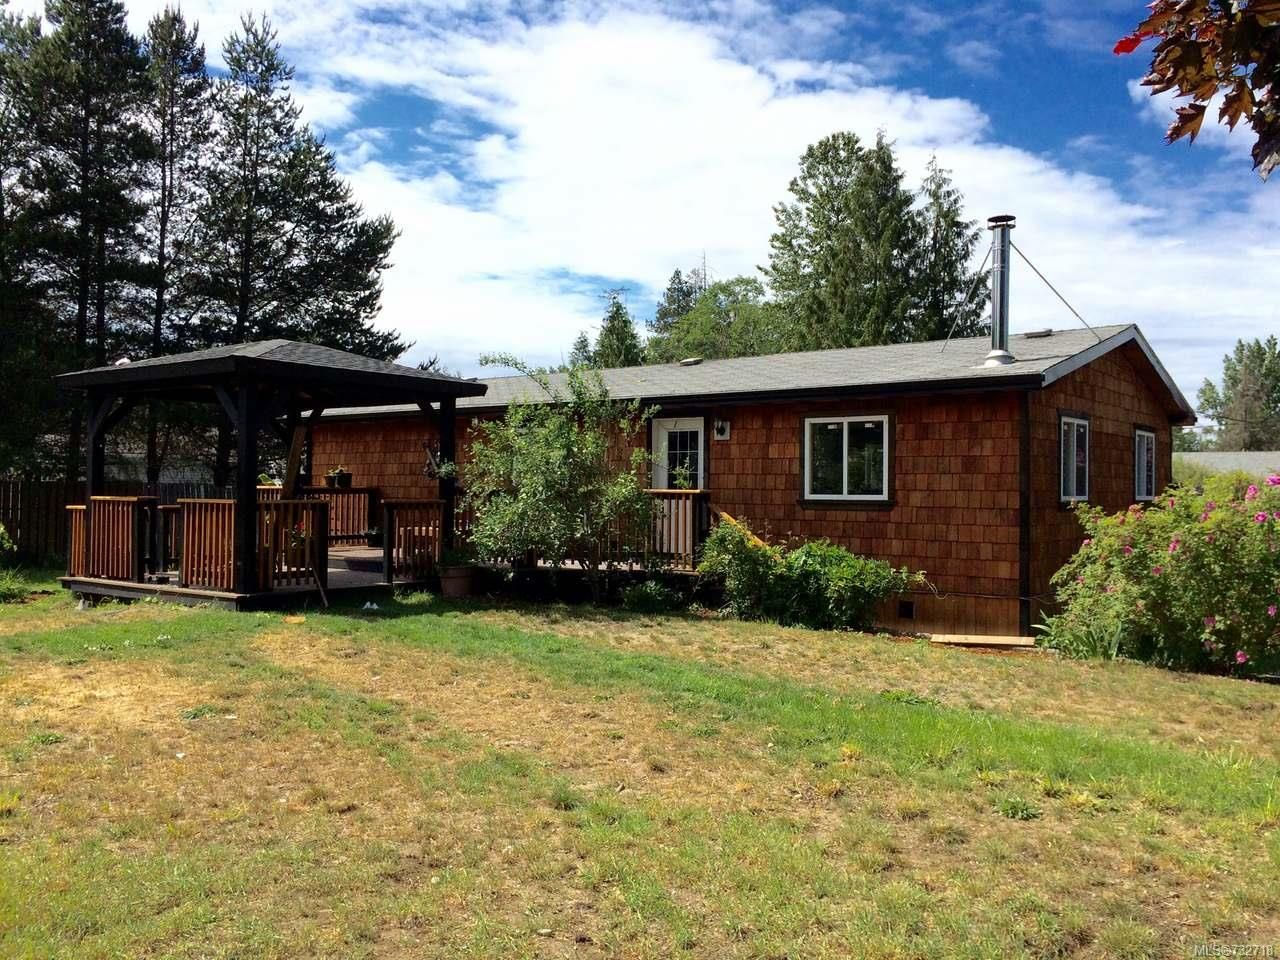 Main Photo: 921 POPLAR Way in ERRINGTON: PQ Errington/Coombs/Hilliers Manufactured Home for sale (Parksville/Qualicum)  : MLS®# 732718